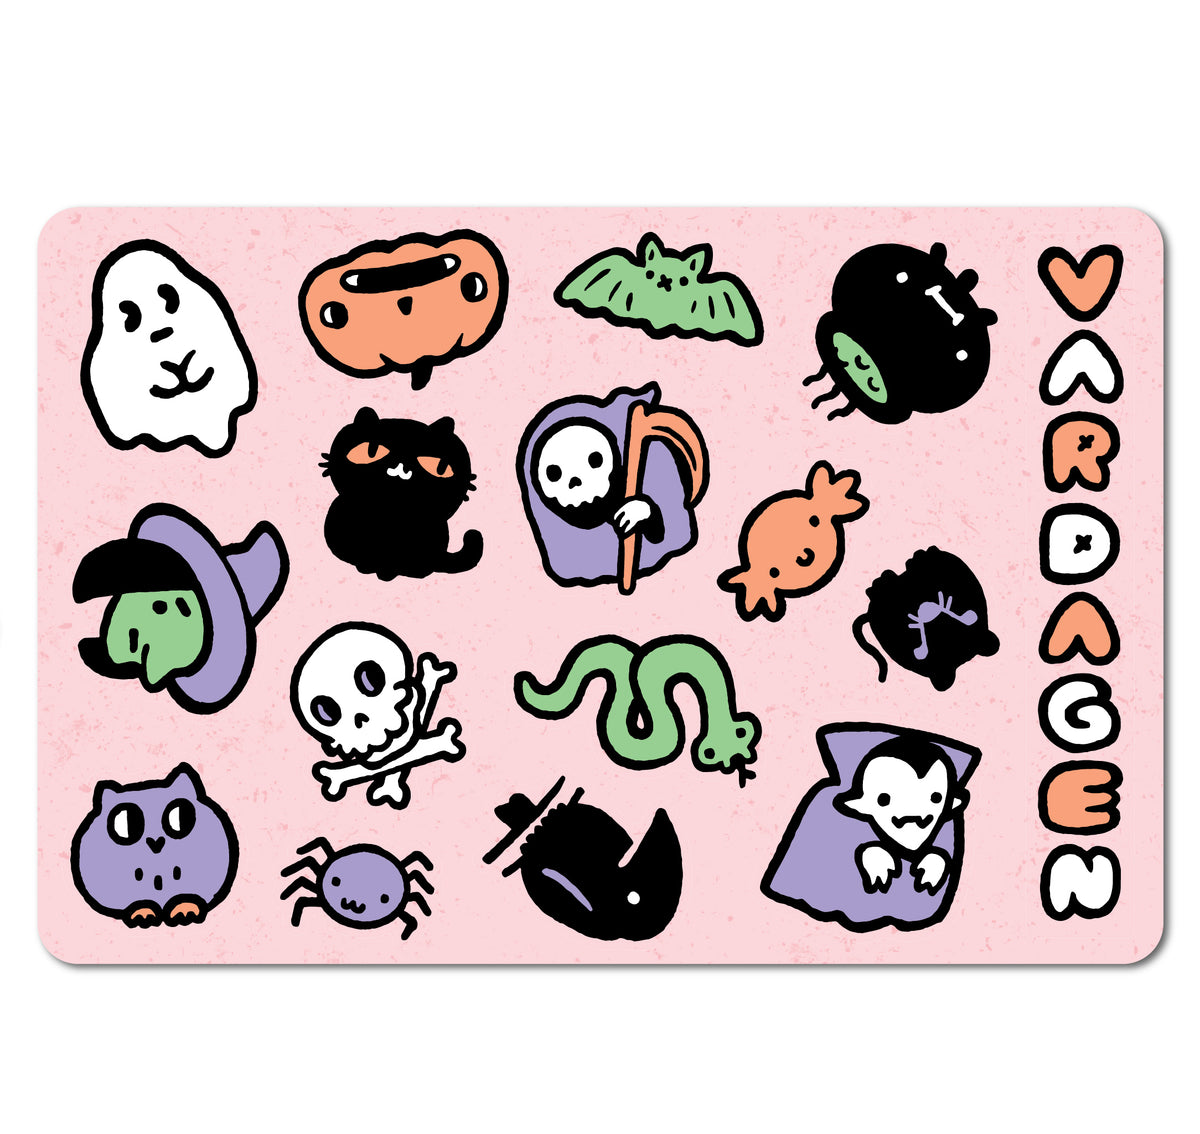 Pastelloween Sticker Sheet